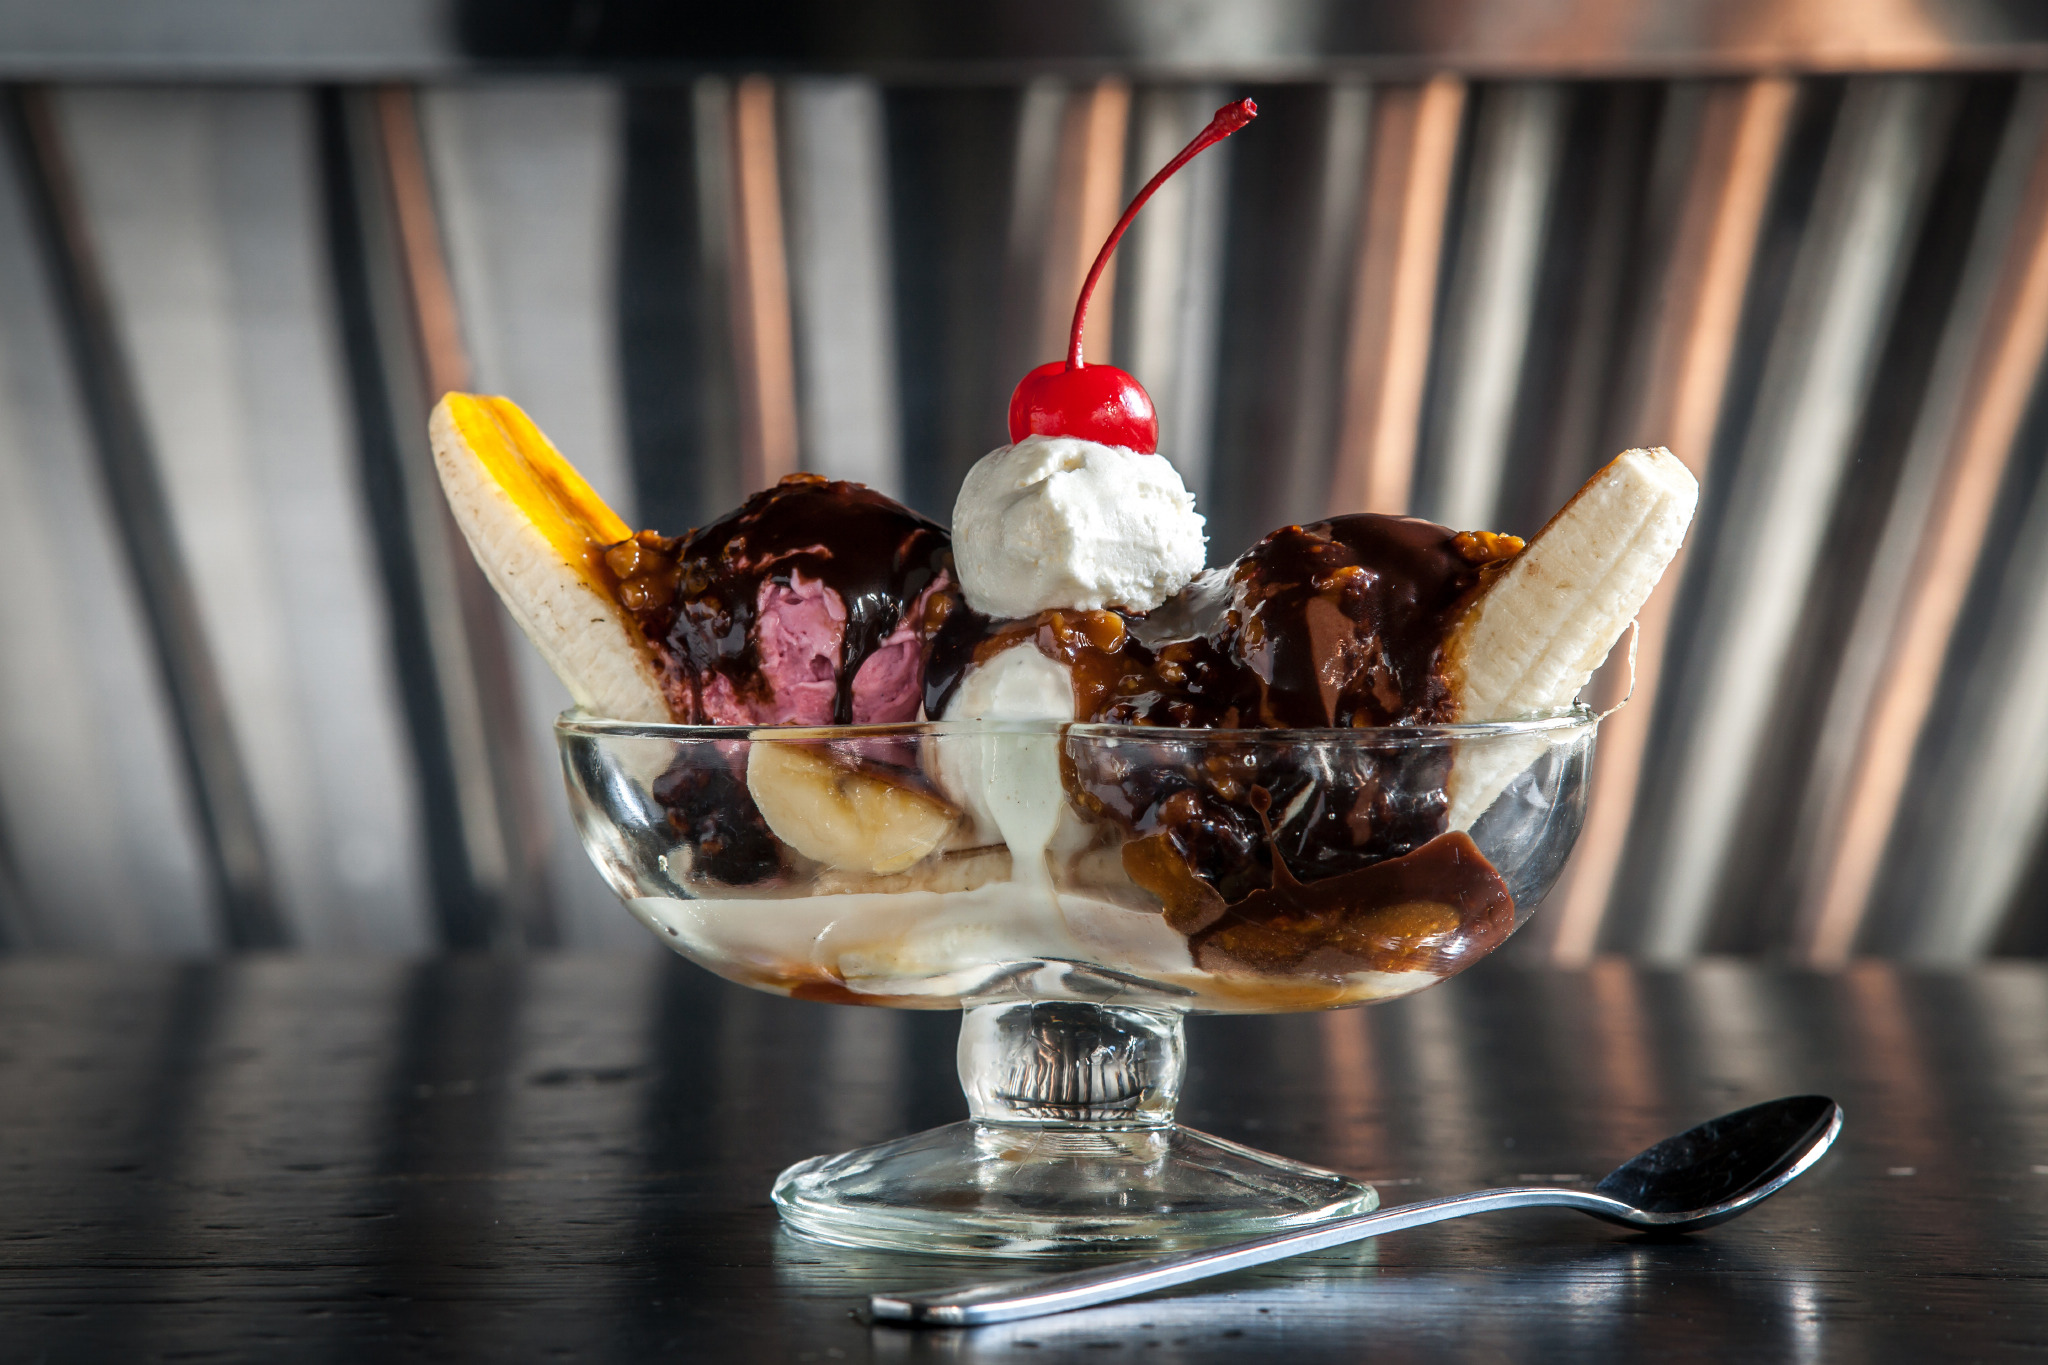 "<h3><a href=""http://www.timeout.com/newyork/restaurants/Empire-Diner"">Banana split at the Empire Diner</a></h3><p>At Food Network star Amanda Freitag's revved-up greasy spoon, three petite mounds of Il Laboratorio del Gelato—vanilla, dark chocolate and seeded raspberry—are covered in upmarket toppings: wet walnuts (simmered in syrup), salted-walnut caramel sauce and sugared banana halves torched until glassy like crème brûlée. And unlike the drippy behemoths found at the ice cream parlor, Freitag's split comes crowned with one tasteful quenelle of whipped cream. But some traditions are sacrosanct: The artful update is finished with a bright neon-red maraschino cherry. <em>210 Tenth Ave between 22nd and 23rd Sts (212-596-7523, <a href=""http://www.empire-diner.com"" target=""_blank"">empire-diner.com</a>). $8. </em></p>"